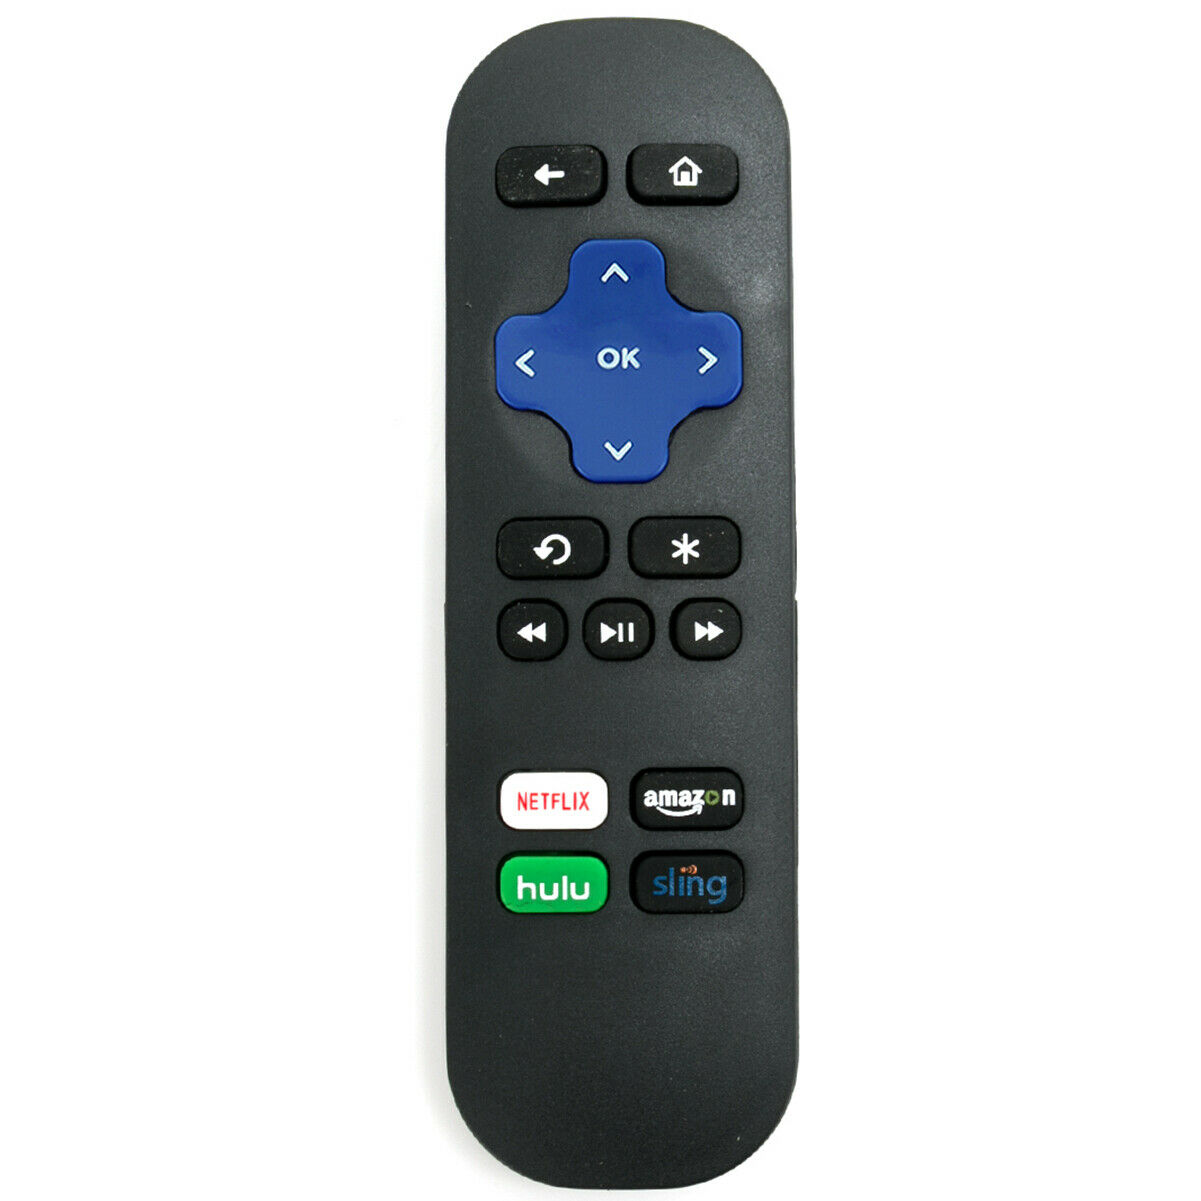 New Universal Remote Control for Express, 1 2 3 4 Streaming